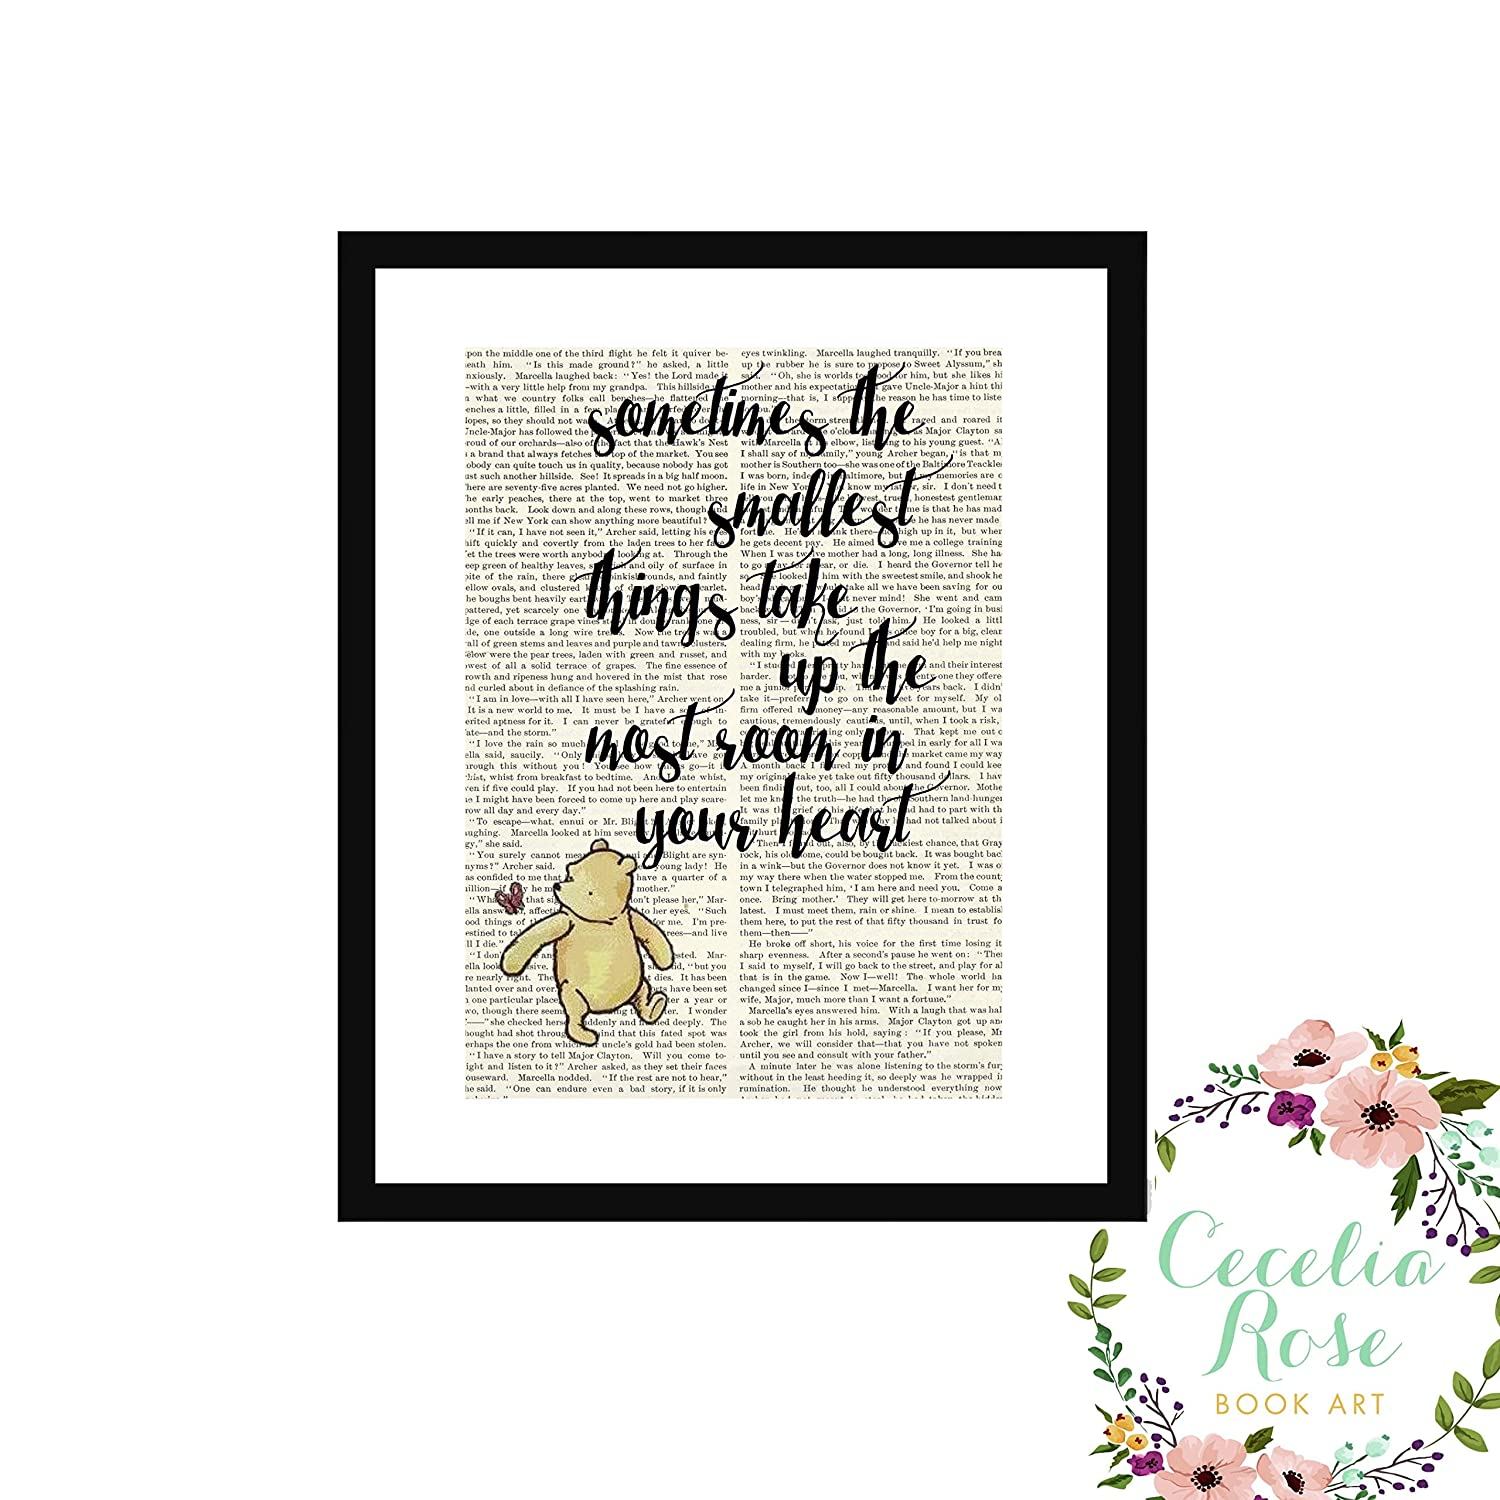 Sometimes the smallest things take up the most room in your heart Winnie the Pooh A A Milne Children's Nursery Farmhouse Literary Typography Vintage Book Page 5x7 Unframed Print